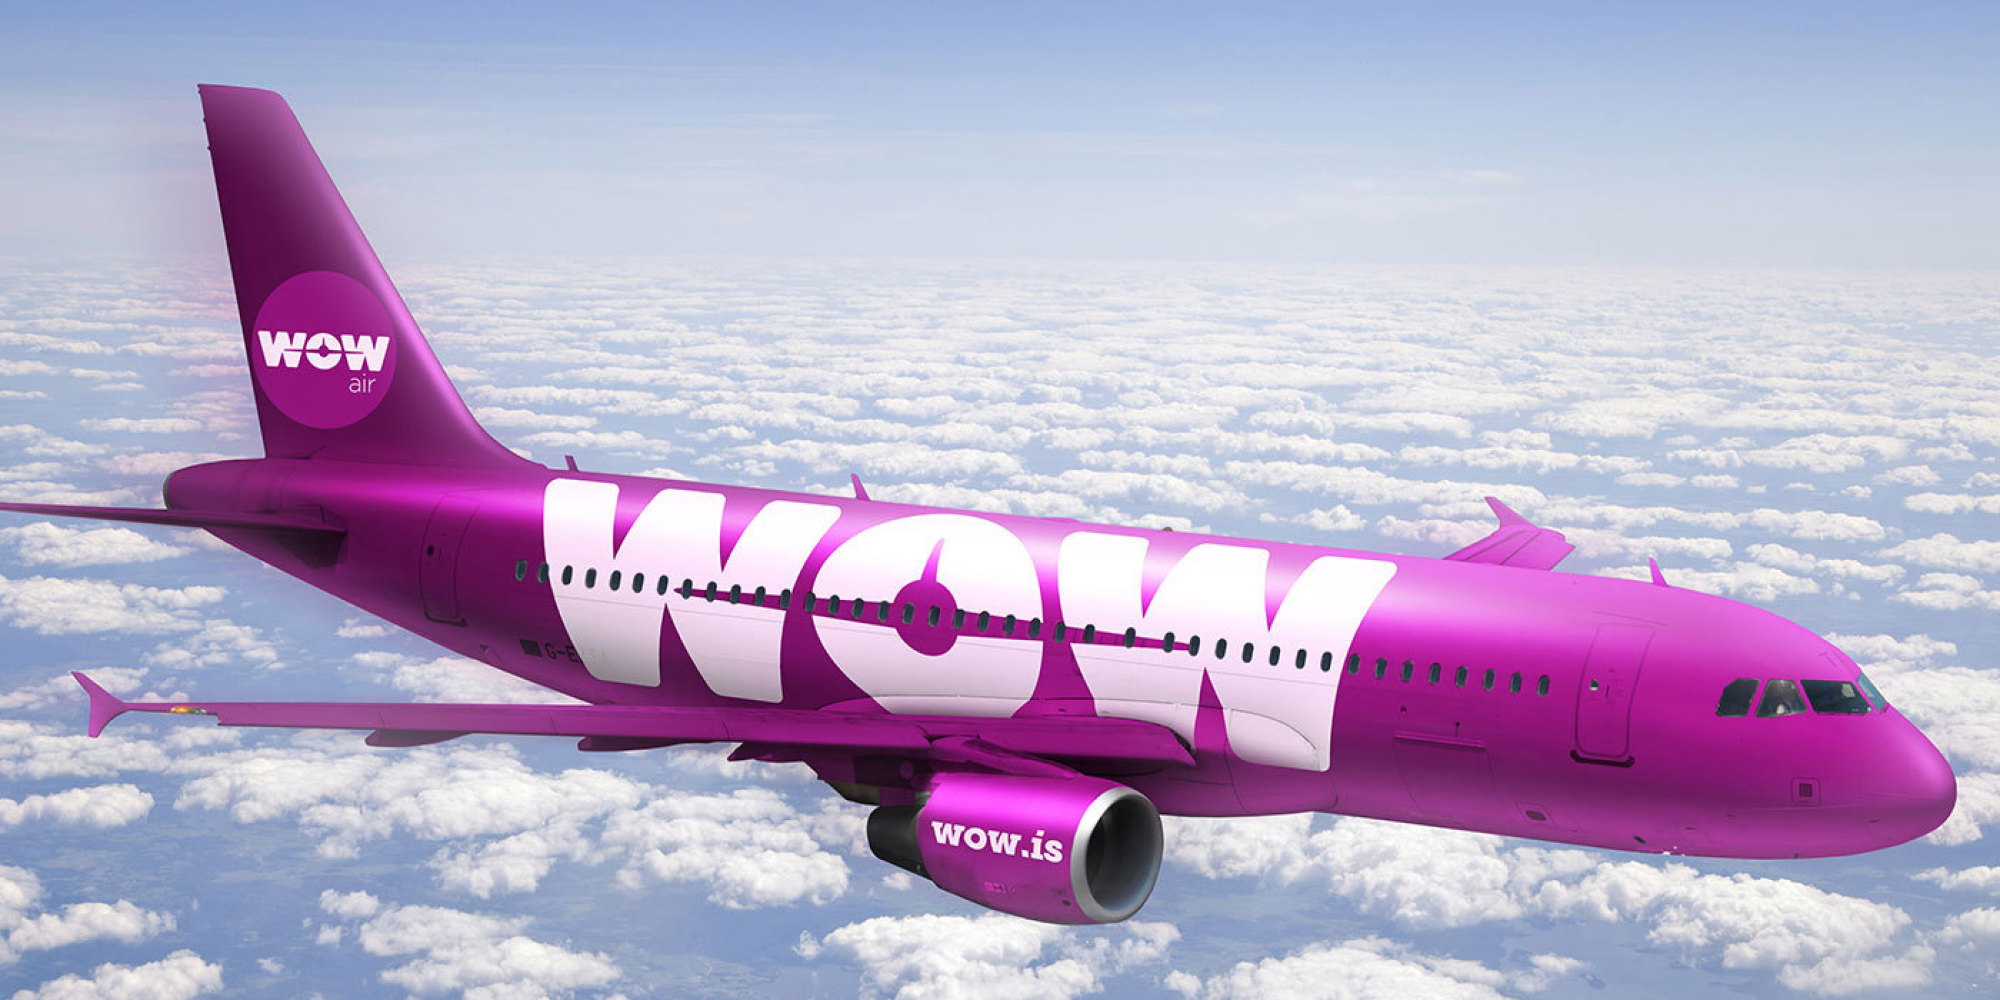 wow-air-offers-cheap-roundtrip-to-europe-for-only-300-afct.jpg